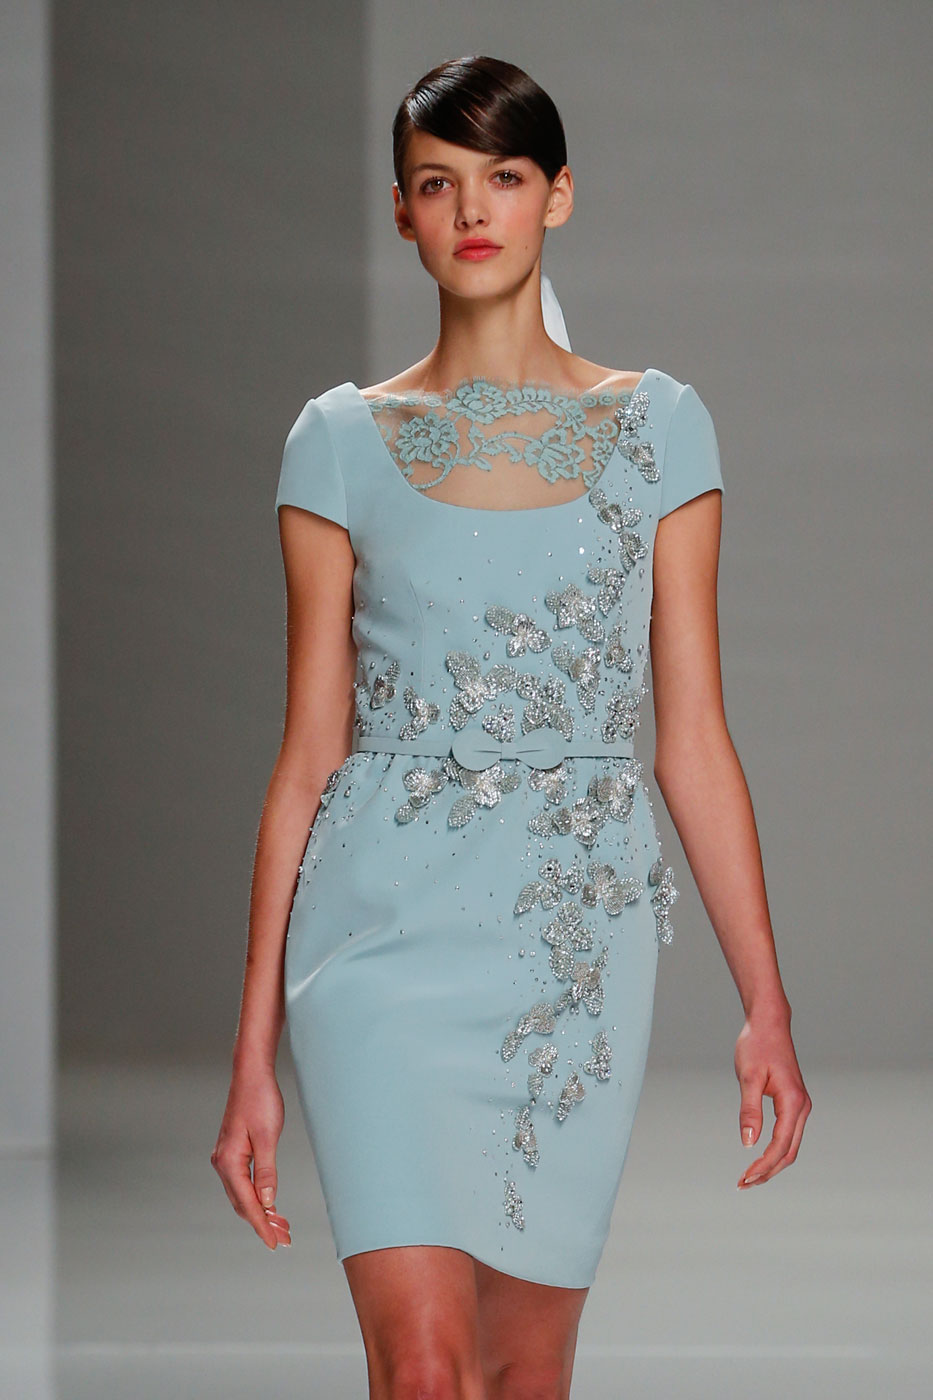 Georges-Hobeika-fashion-runway-show-haute-couture-paris-spring-2015-the-impression-28